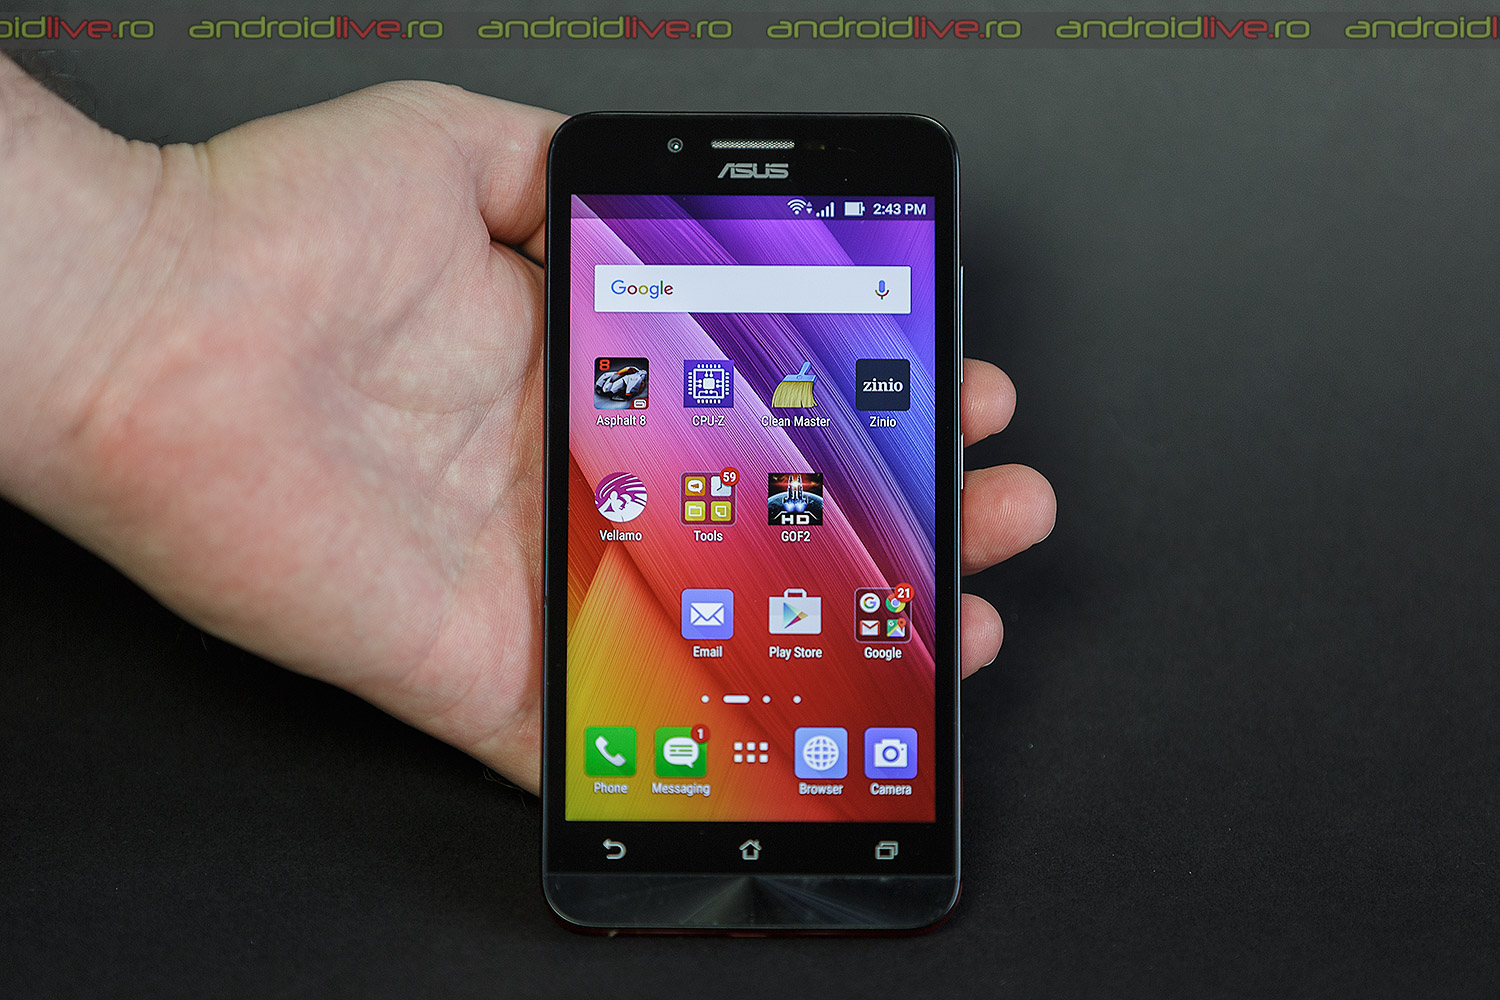 ASUS Zenfone Go